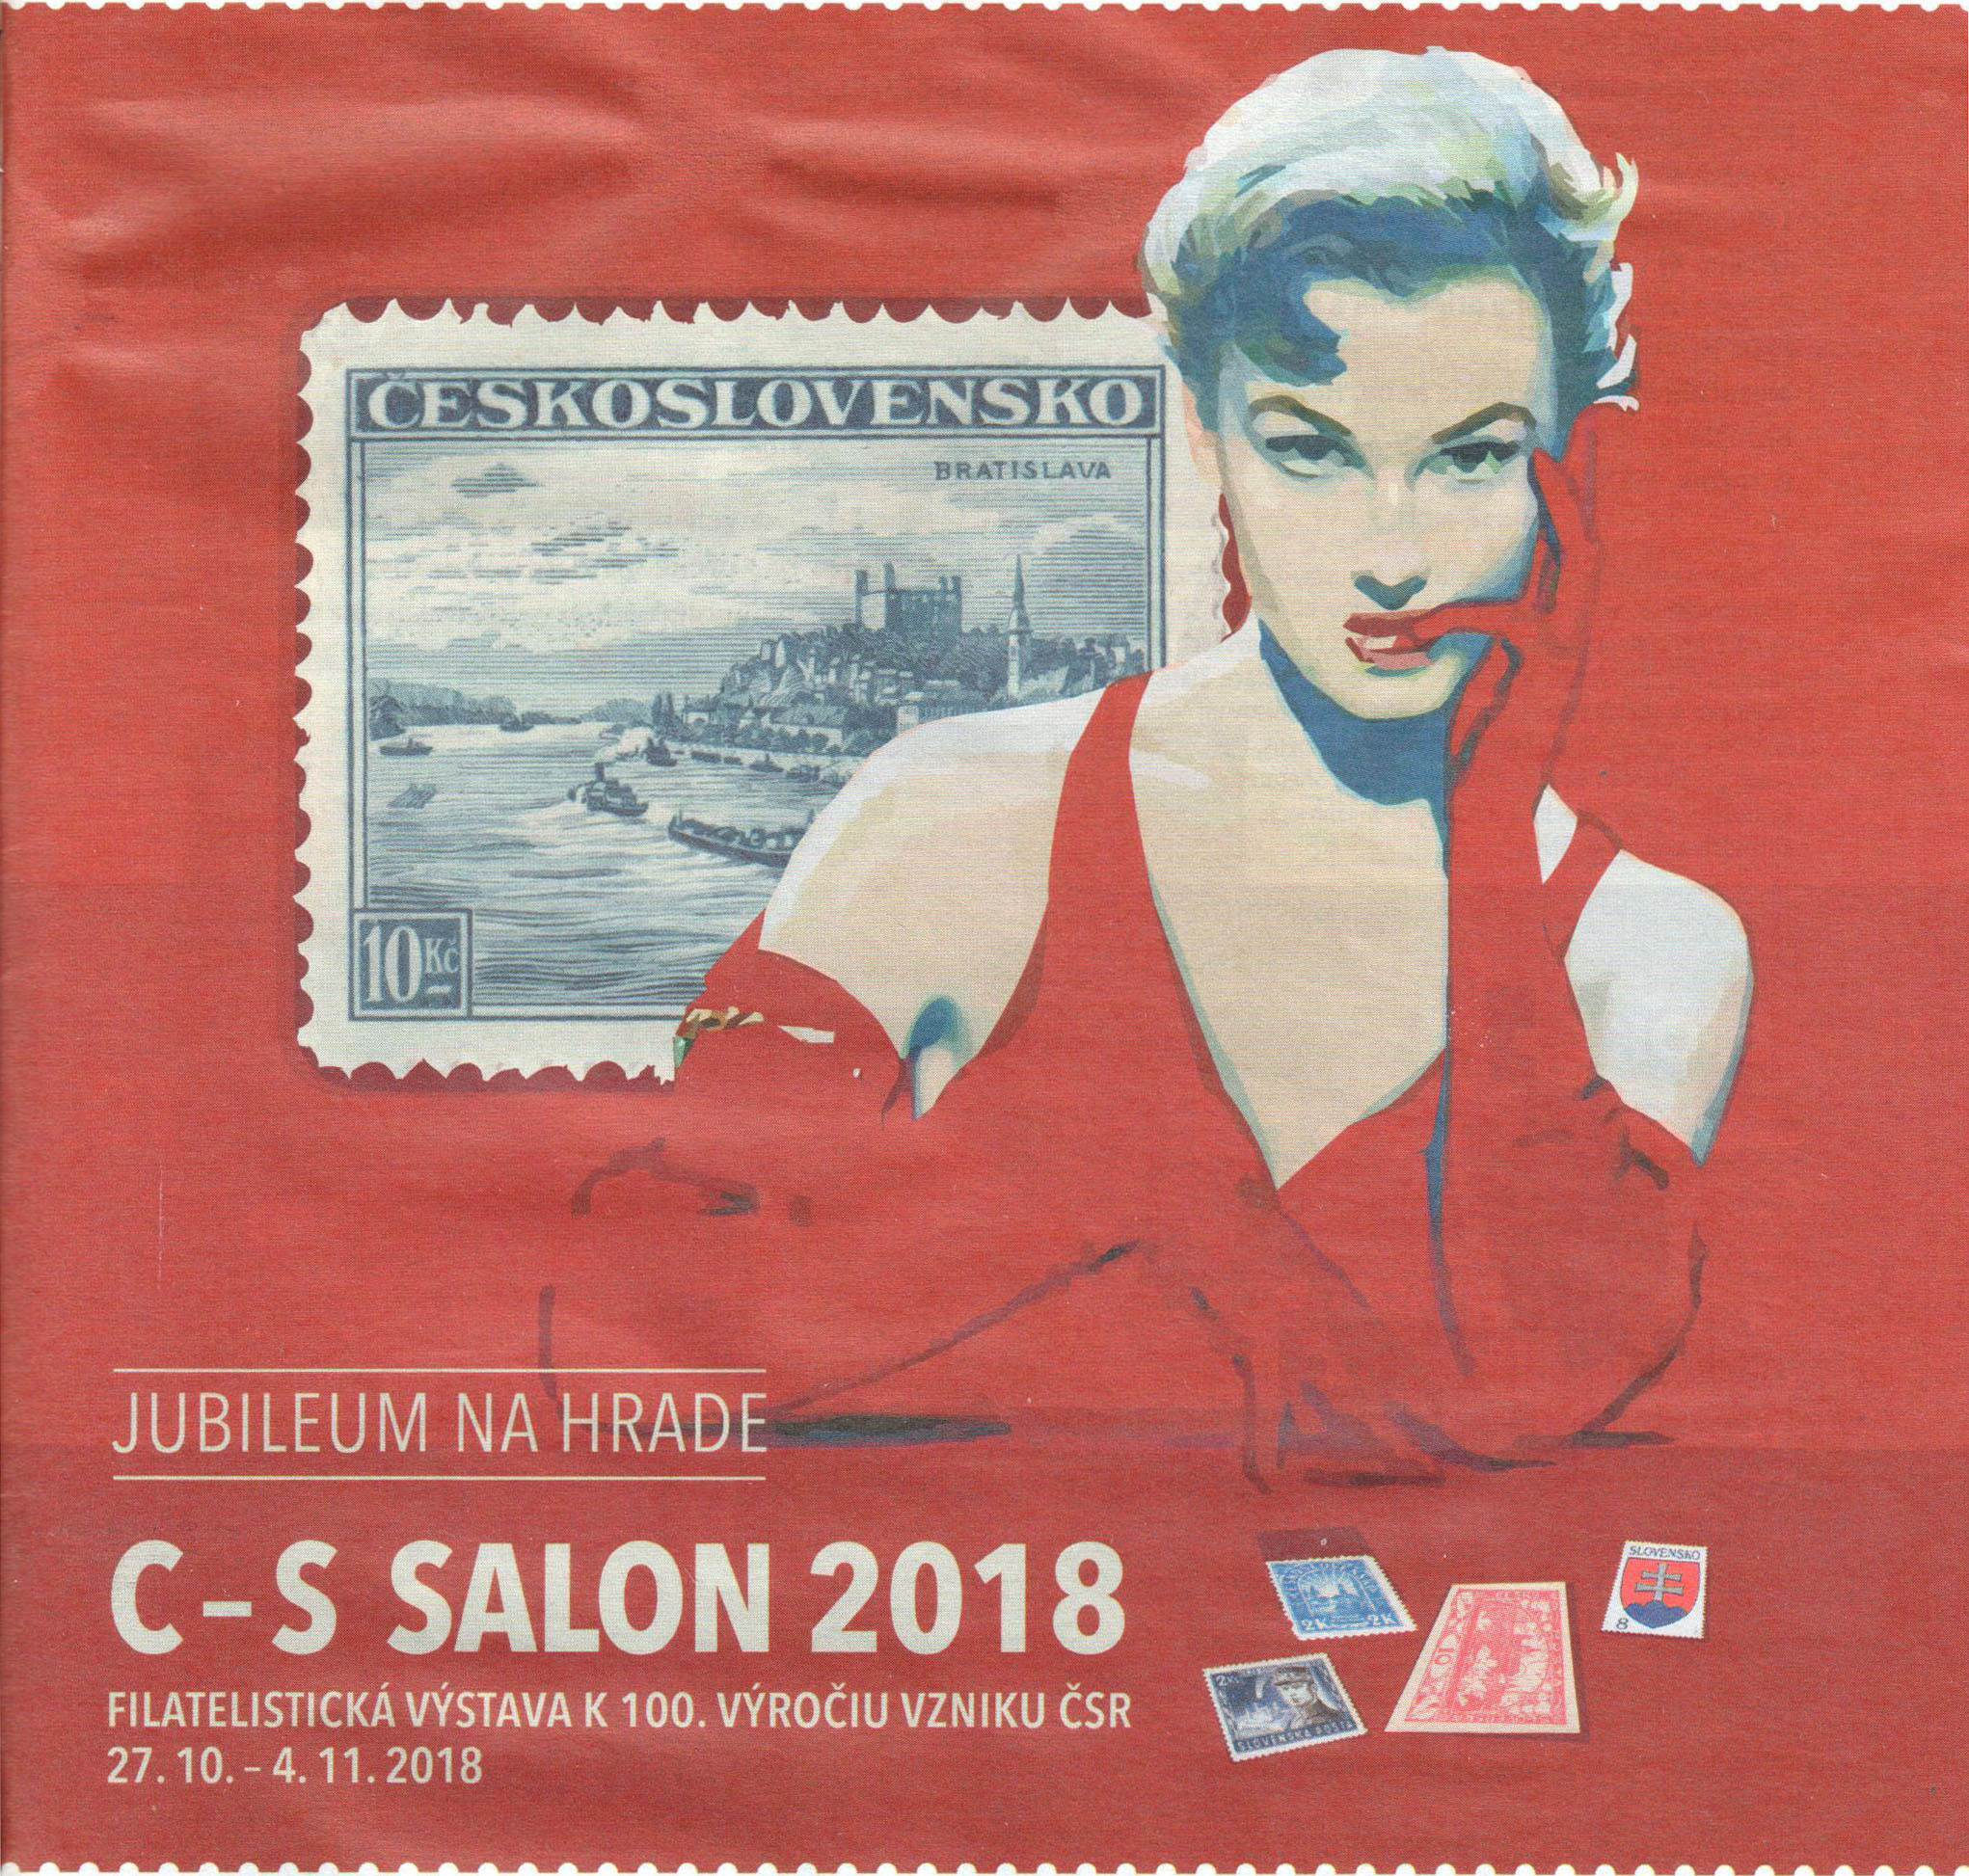 Philatelic Exhibitions Jubilee Philatelic Exhibition C-S SALON 2018 in Bratislava